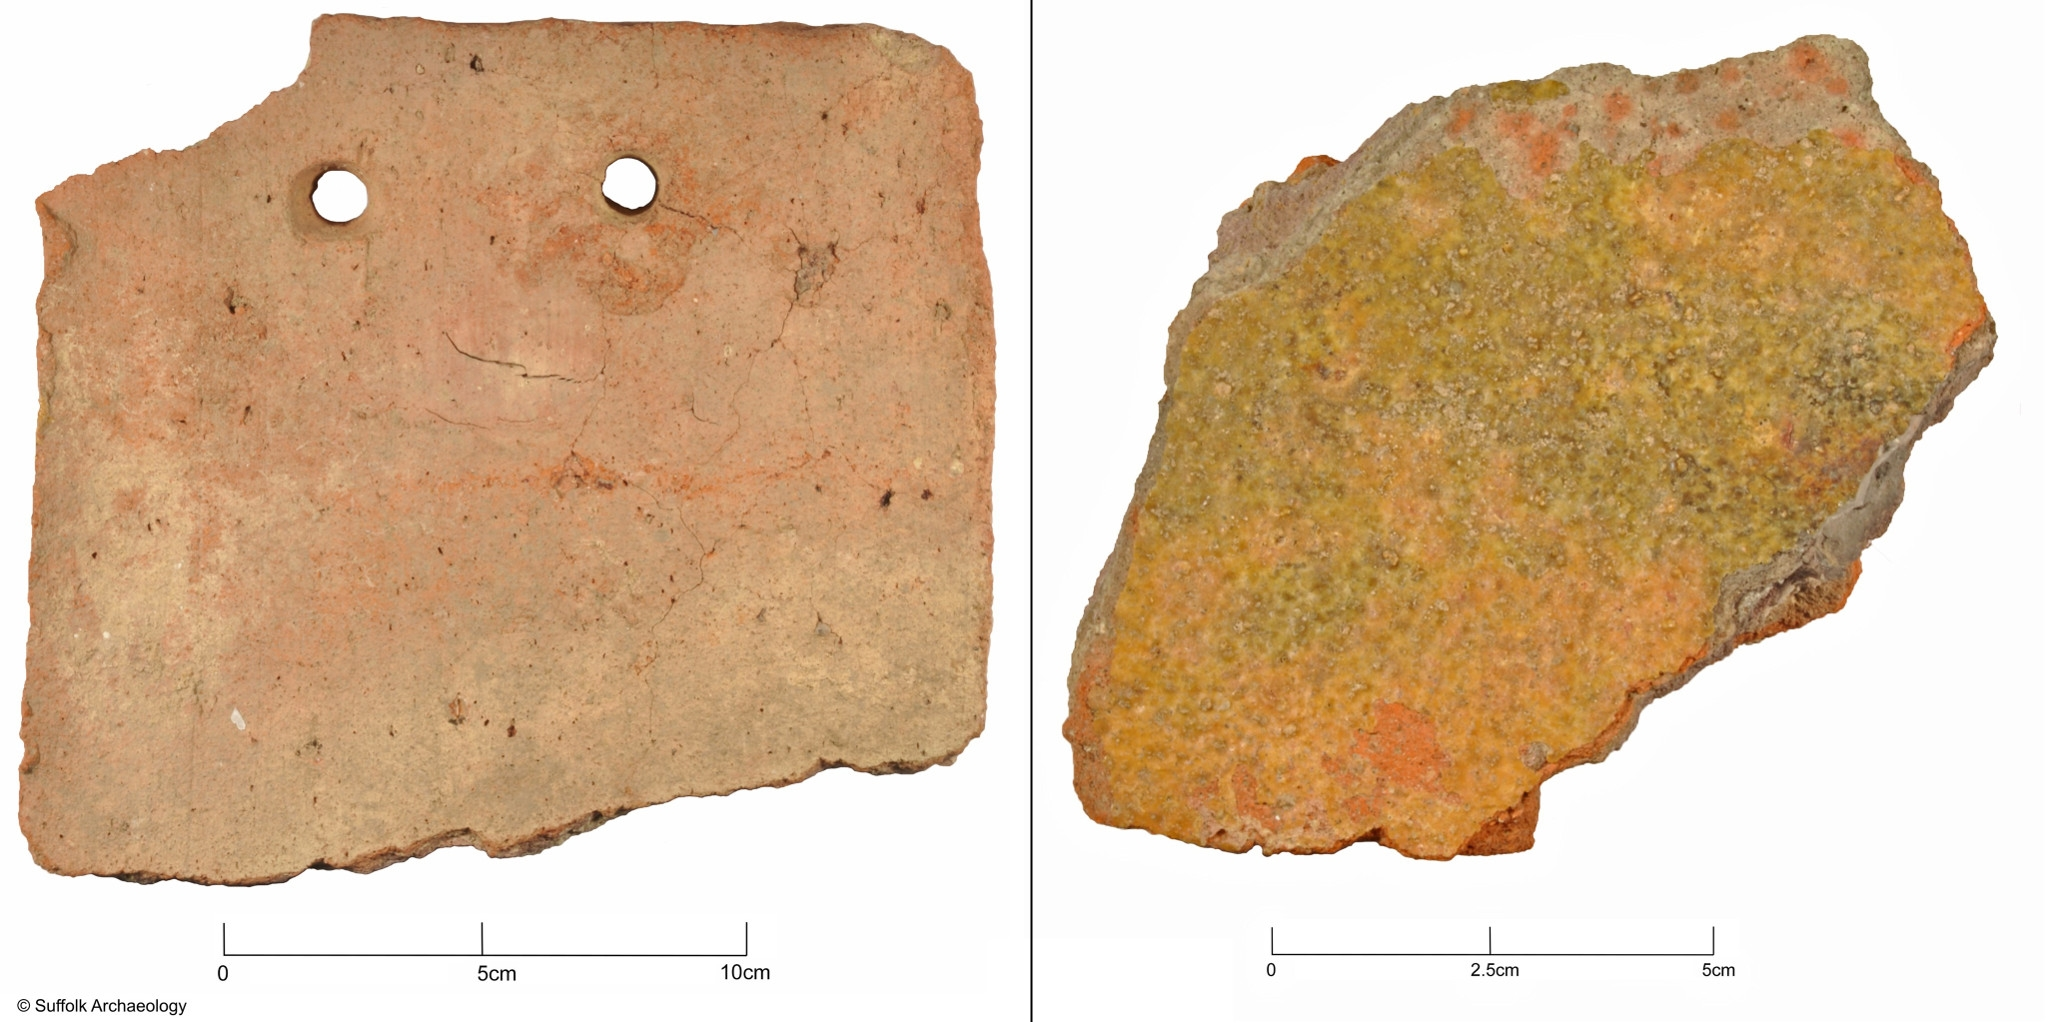 Roof tile (left) and glazed floor tile (right).